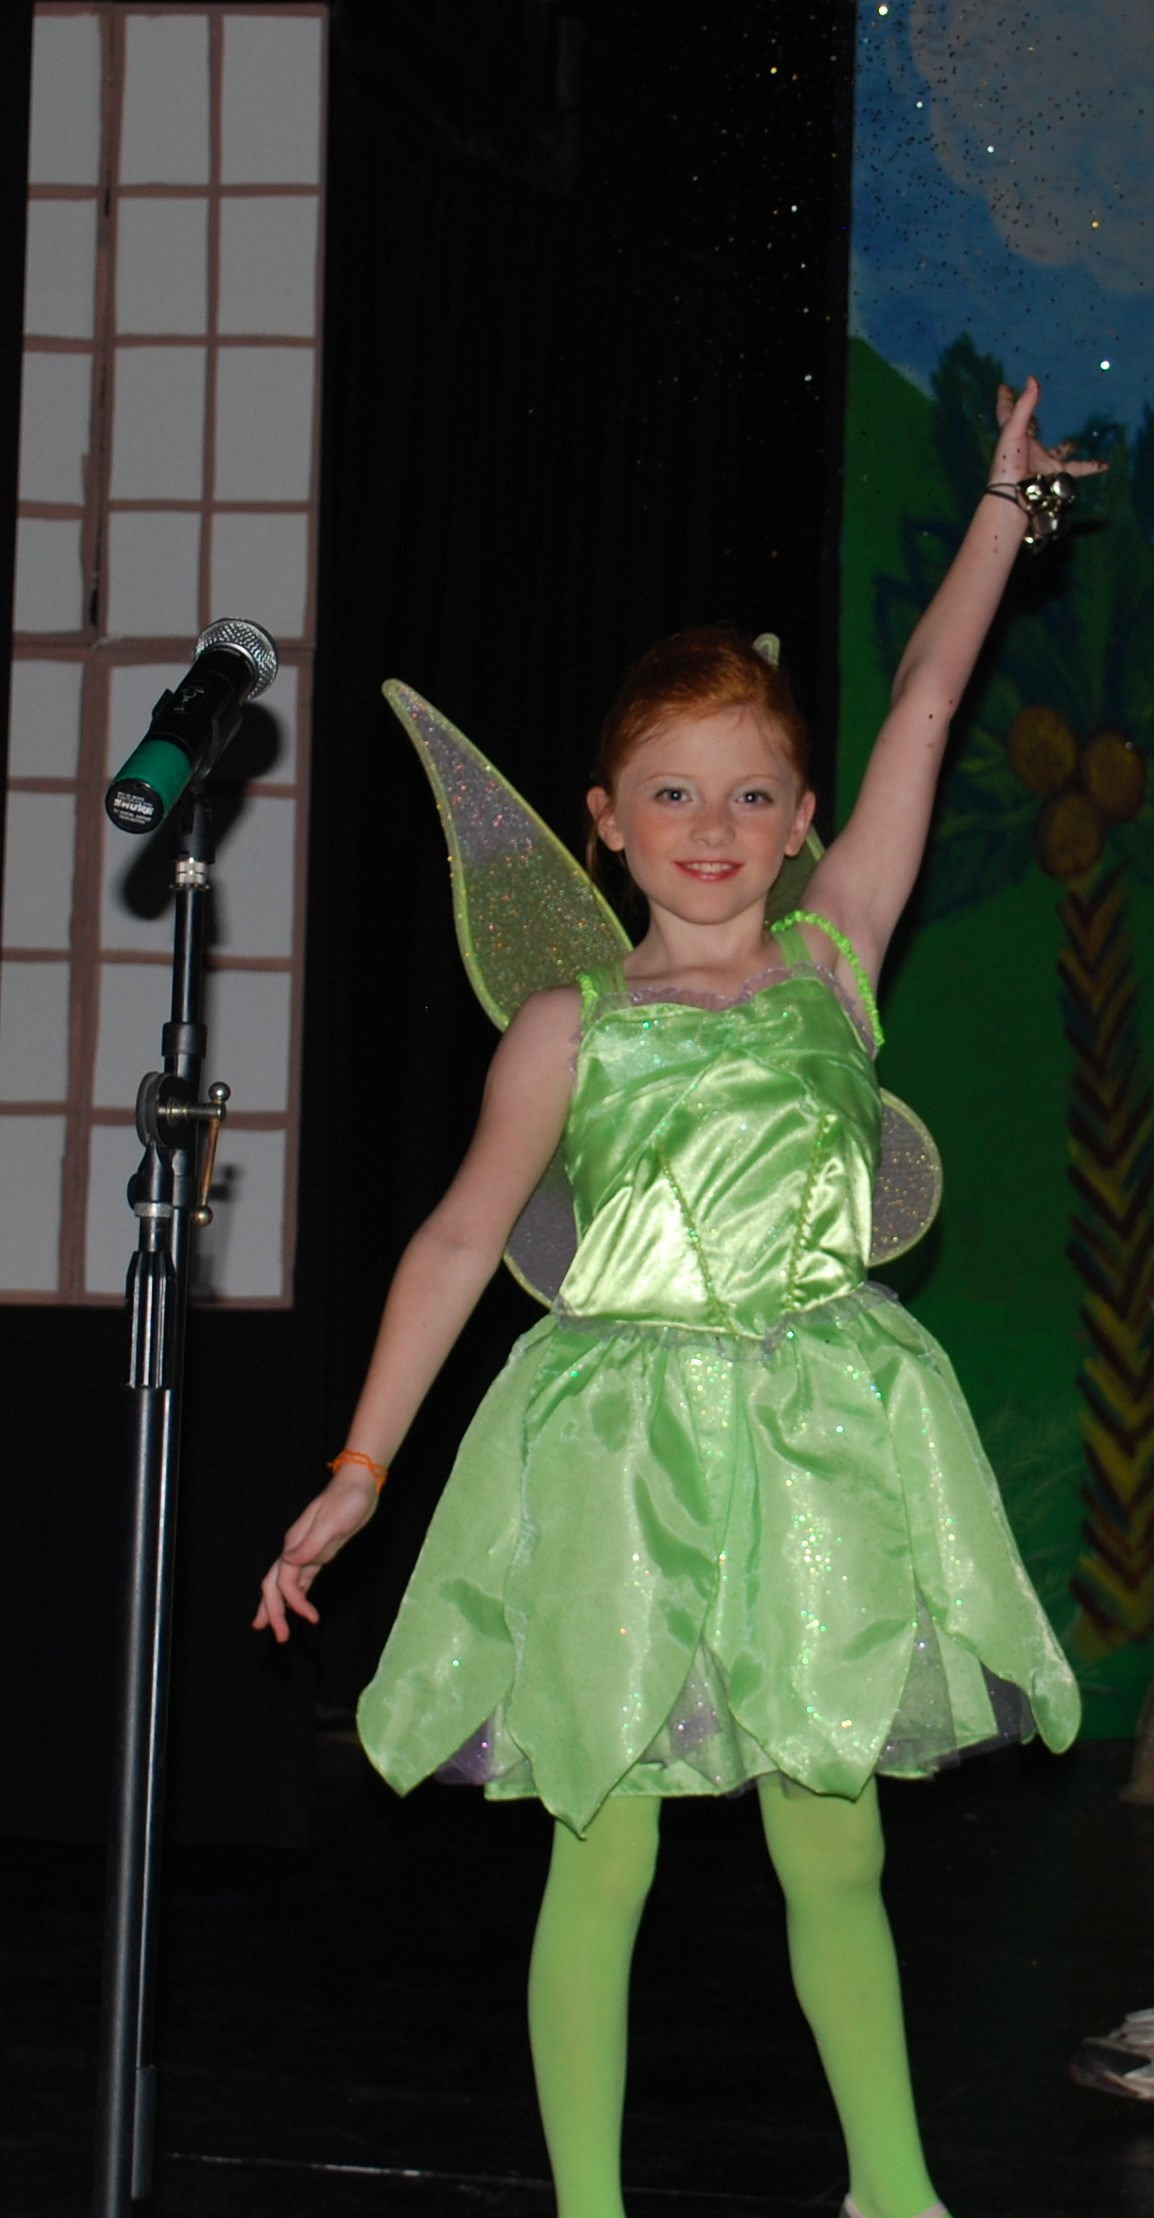 Katelyn as Tinkerbell!